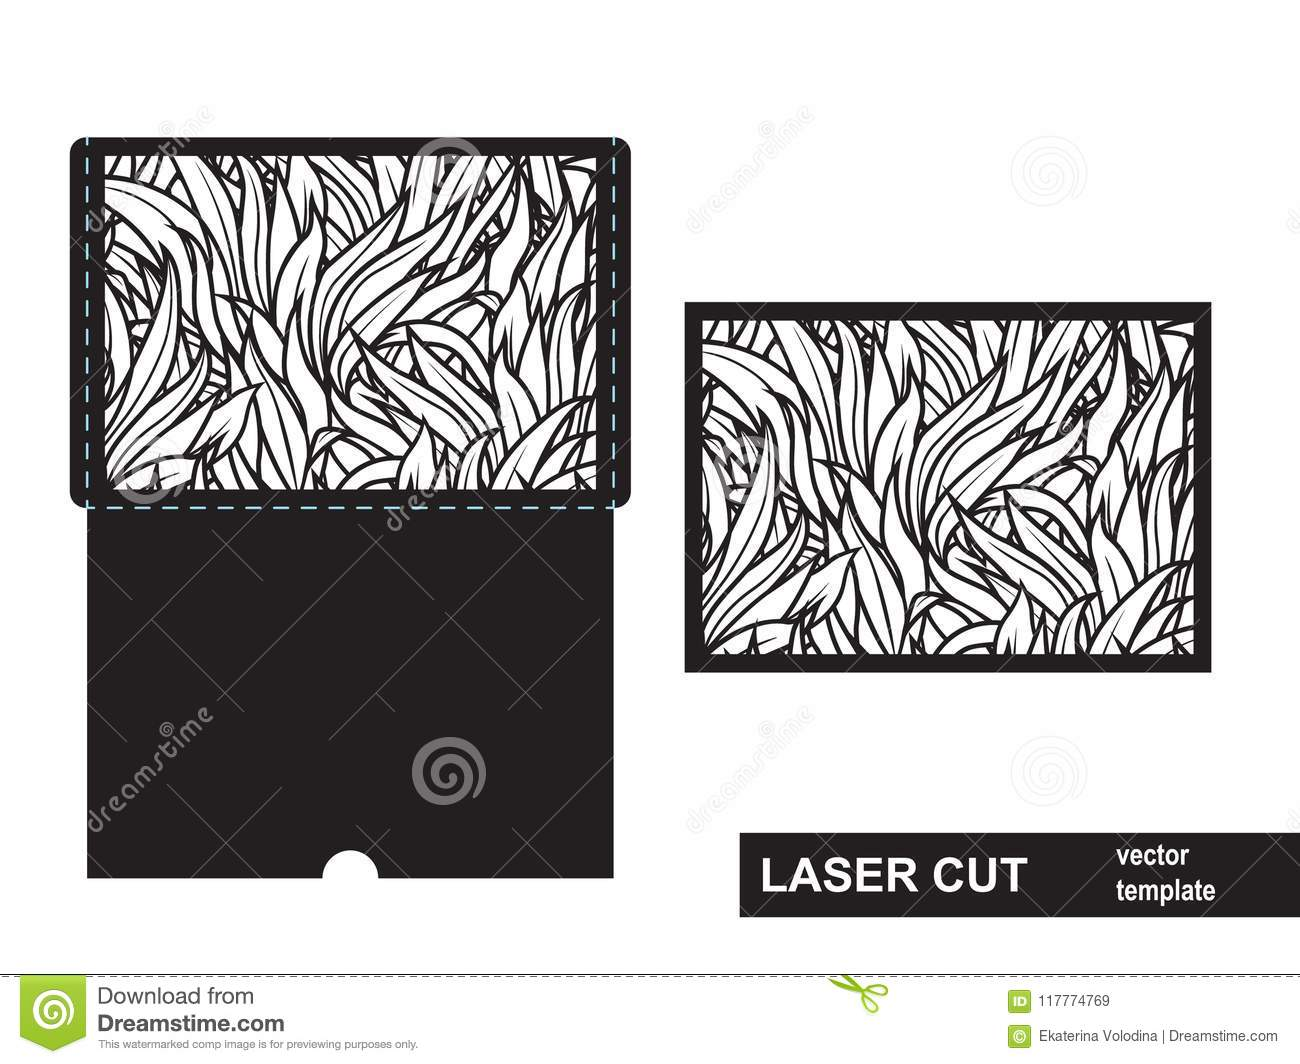 Laser Cut Template From Grass Stock Vector - Illustration of laser ...